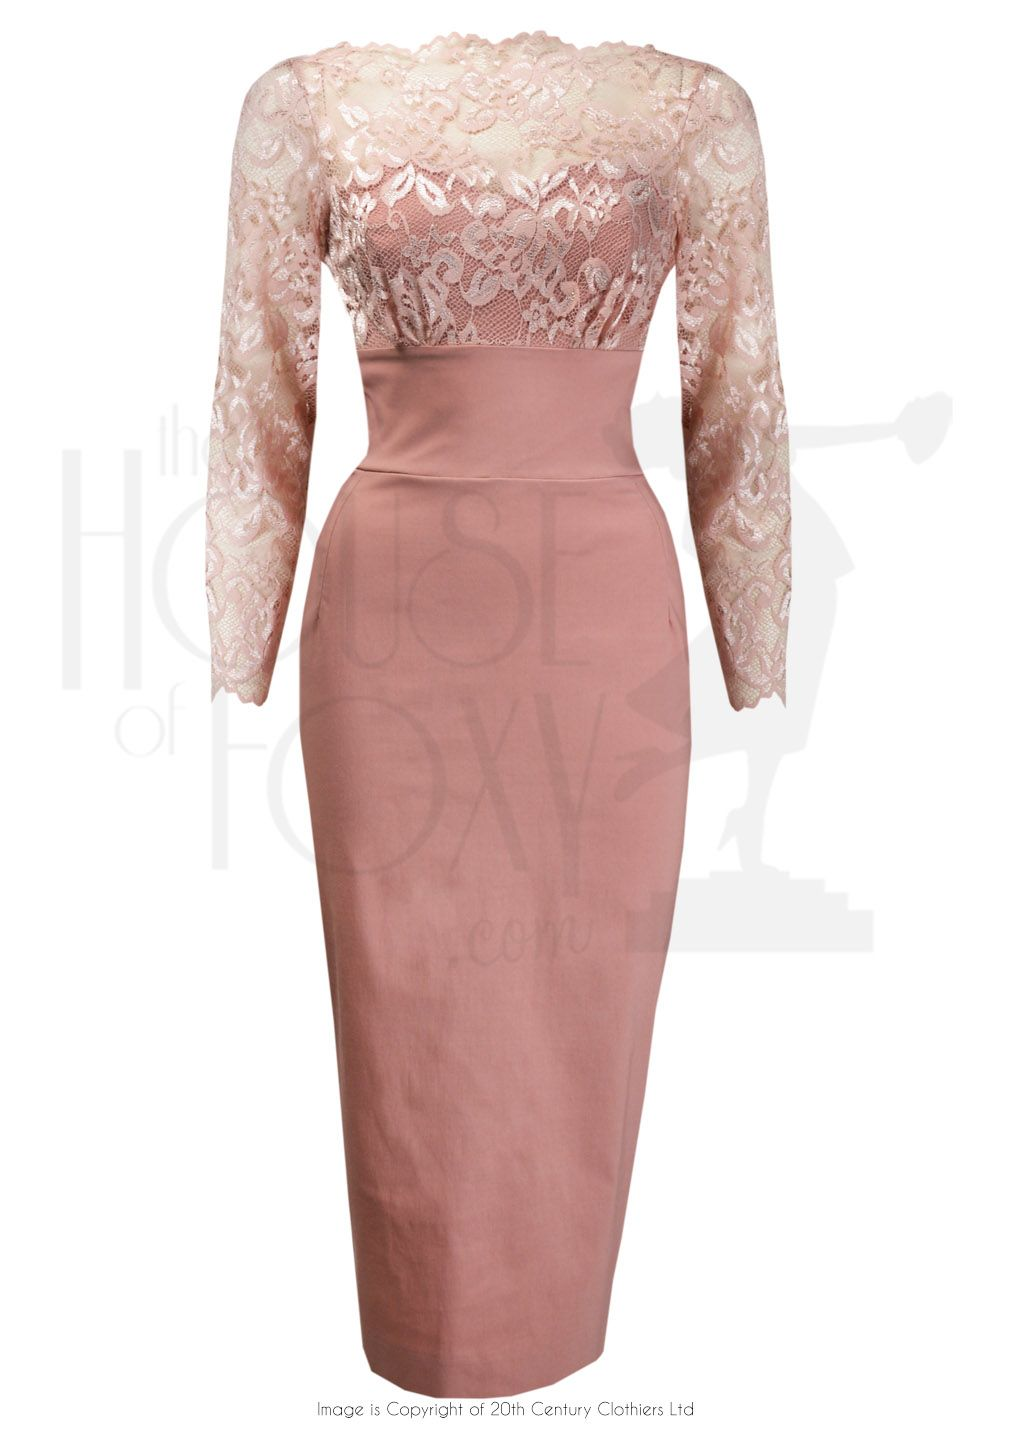 60s Style BardotWiggle Dress in Dusty Rose   P E R S O N A L ...